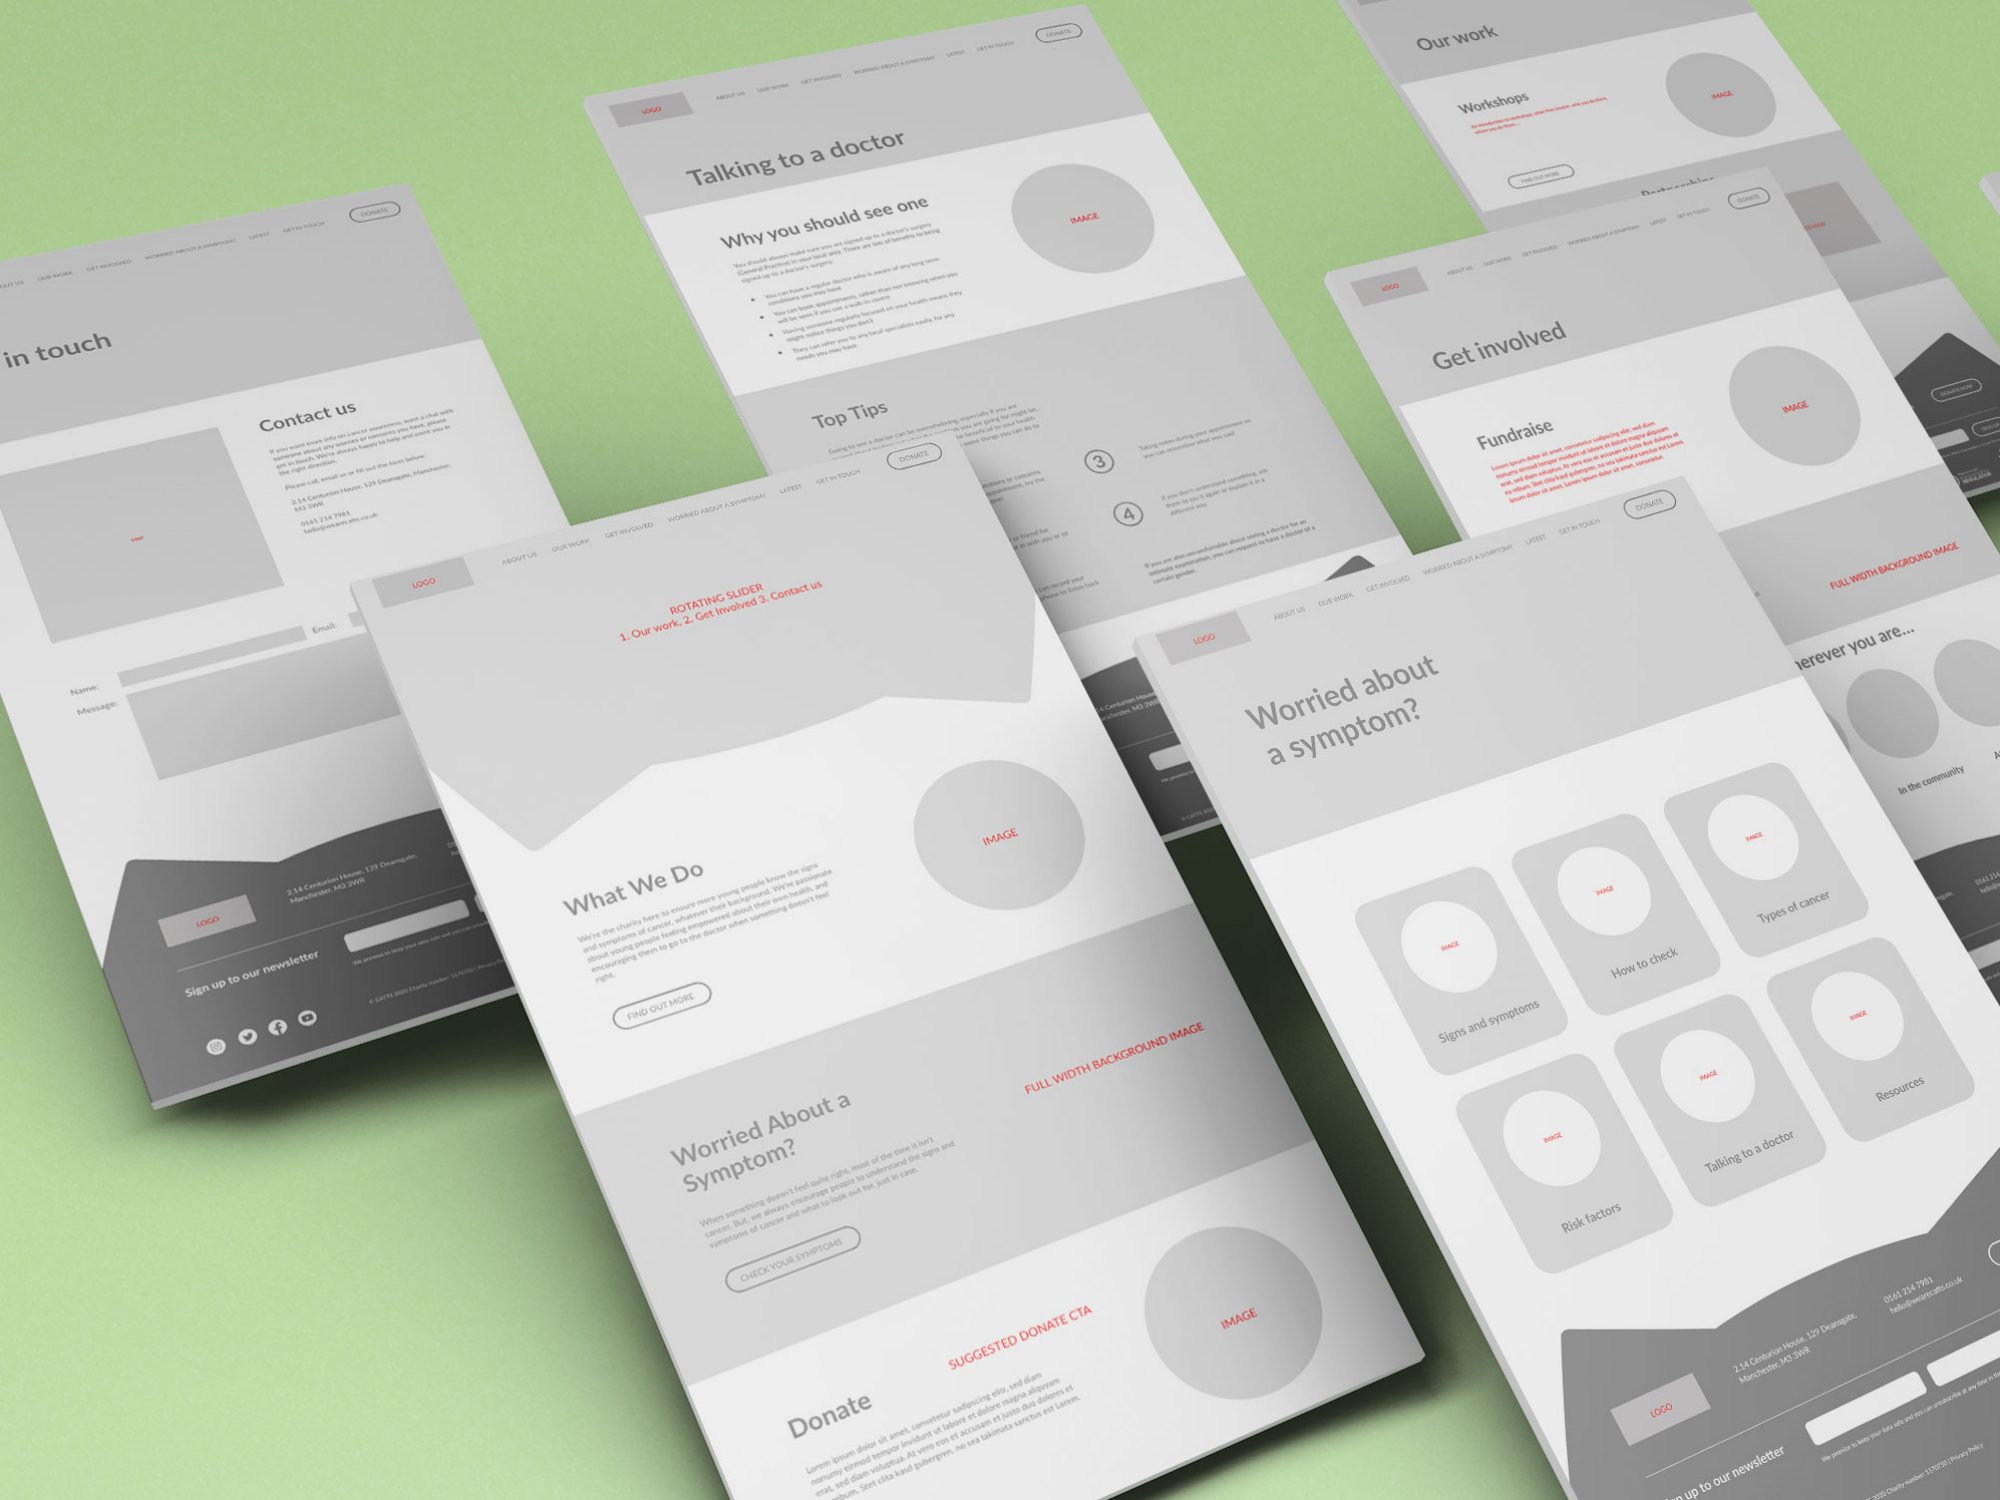 Catts_Wireframes